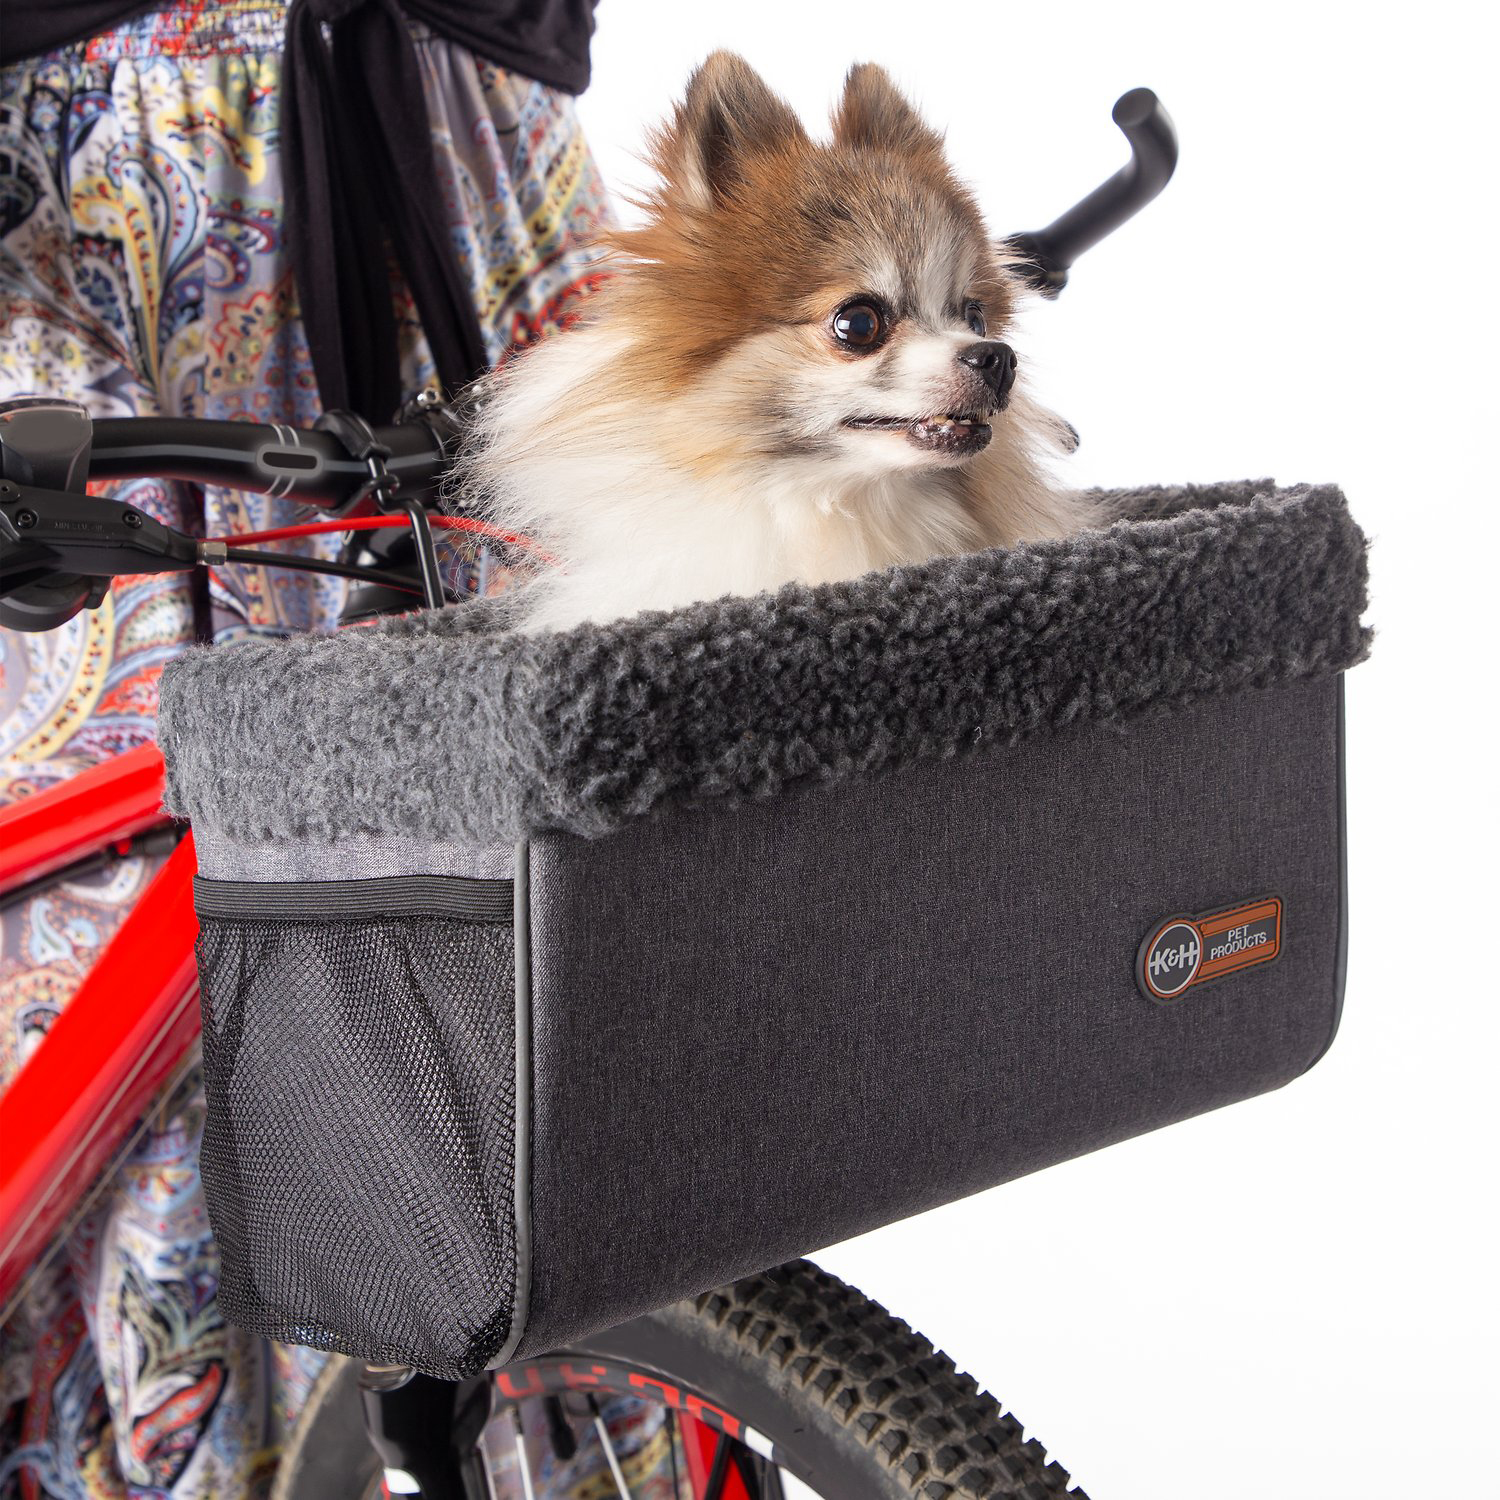 k-and-h-pet-products-travel-dog-bike-basket